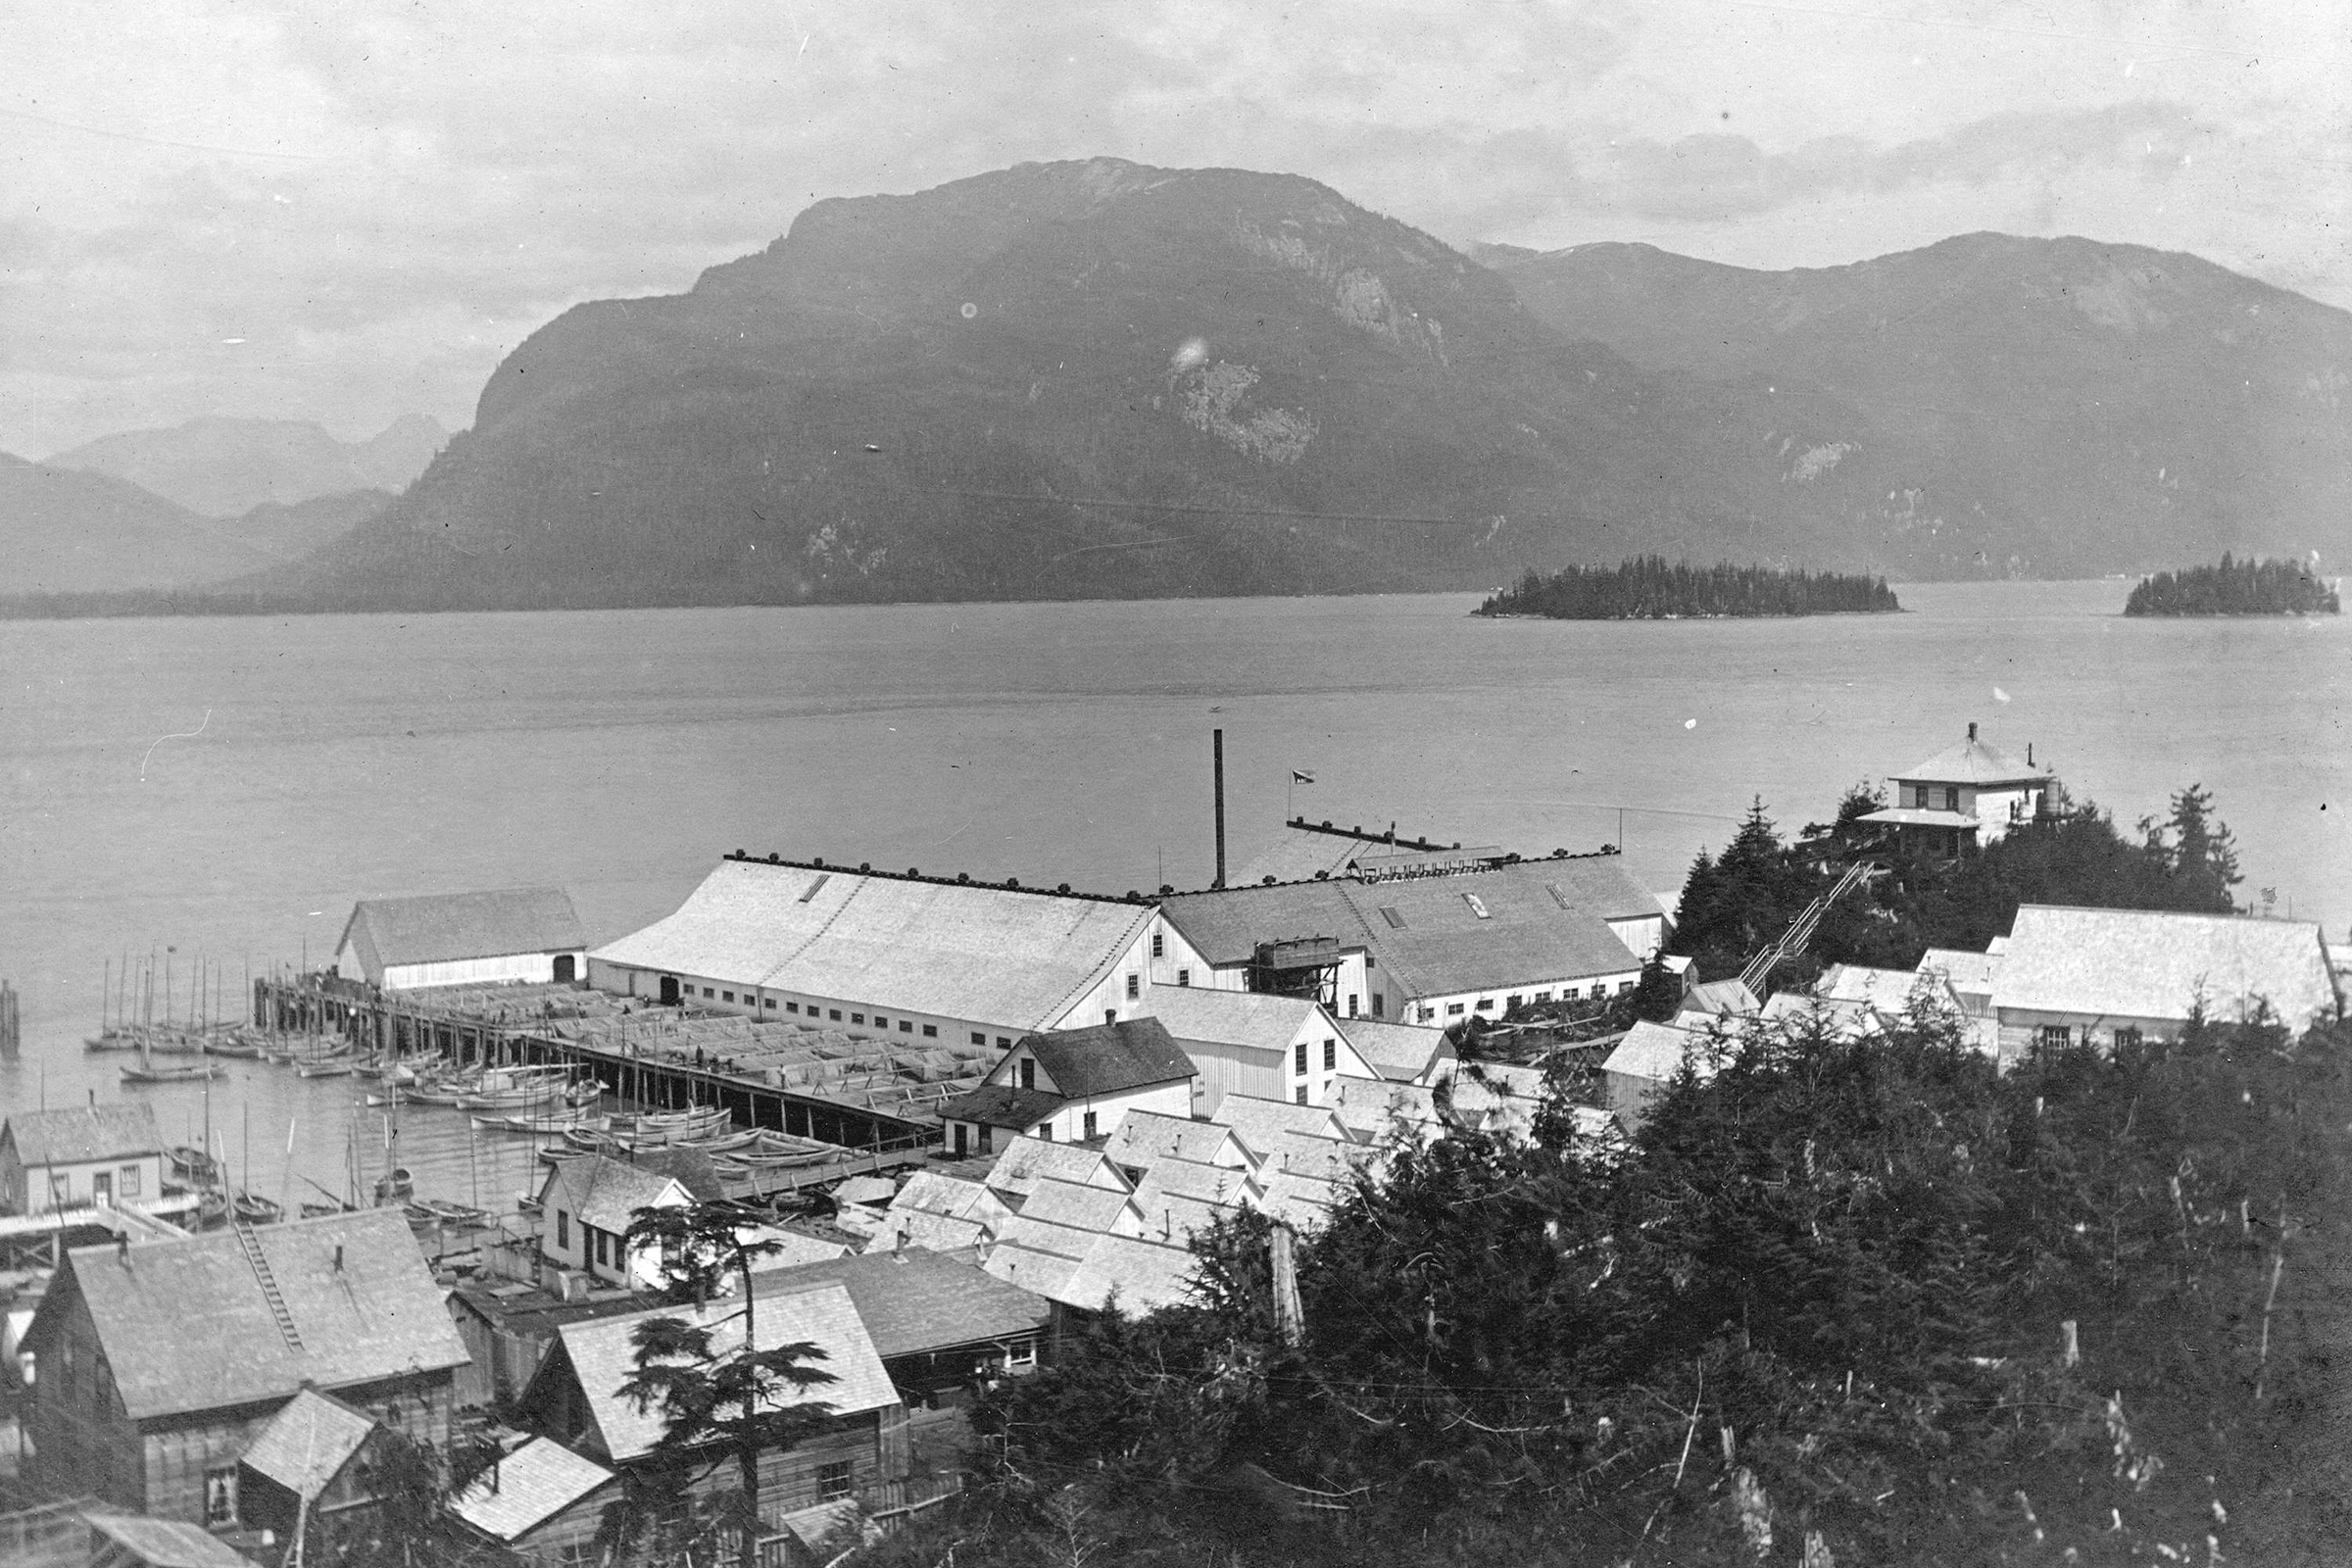 In 1926, Port Essington was a thriving community, based solely on the catching and canning of salmon. Photograph courtesy of the City of Vancouver Archive